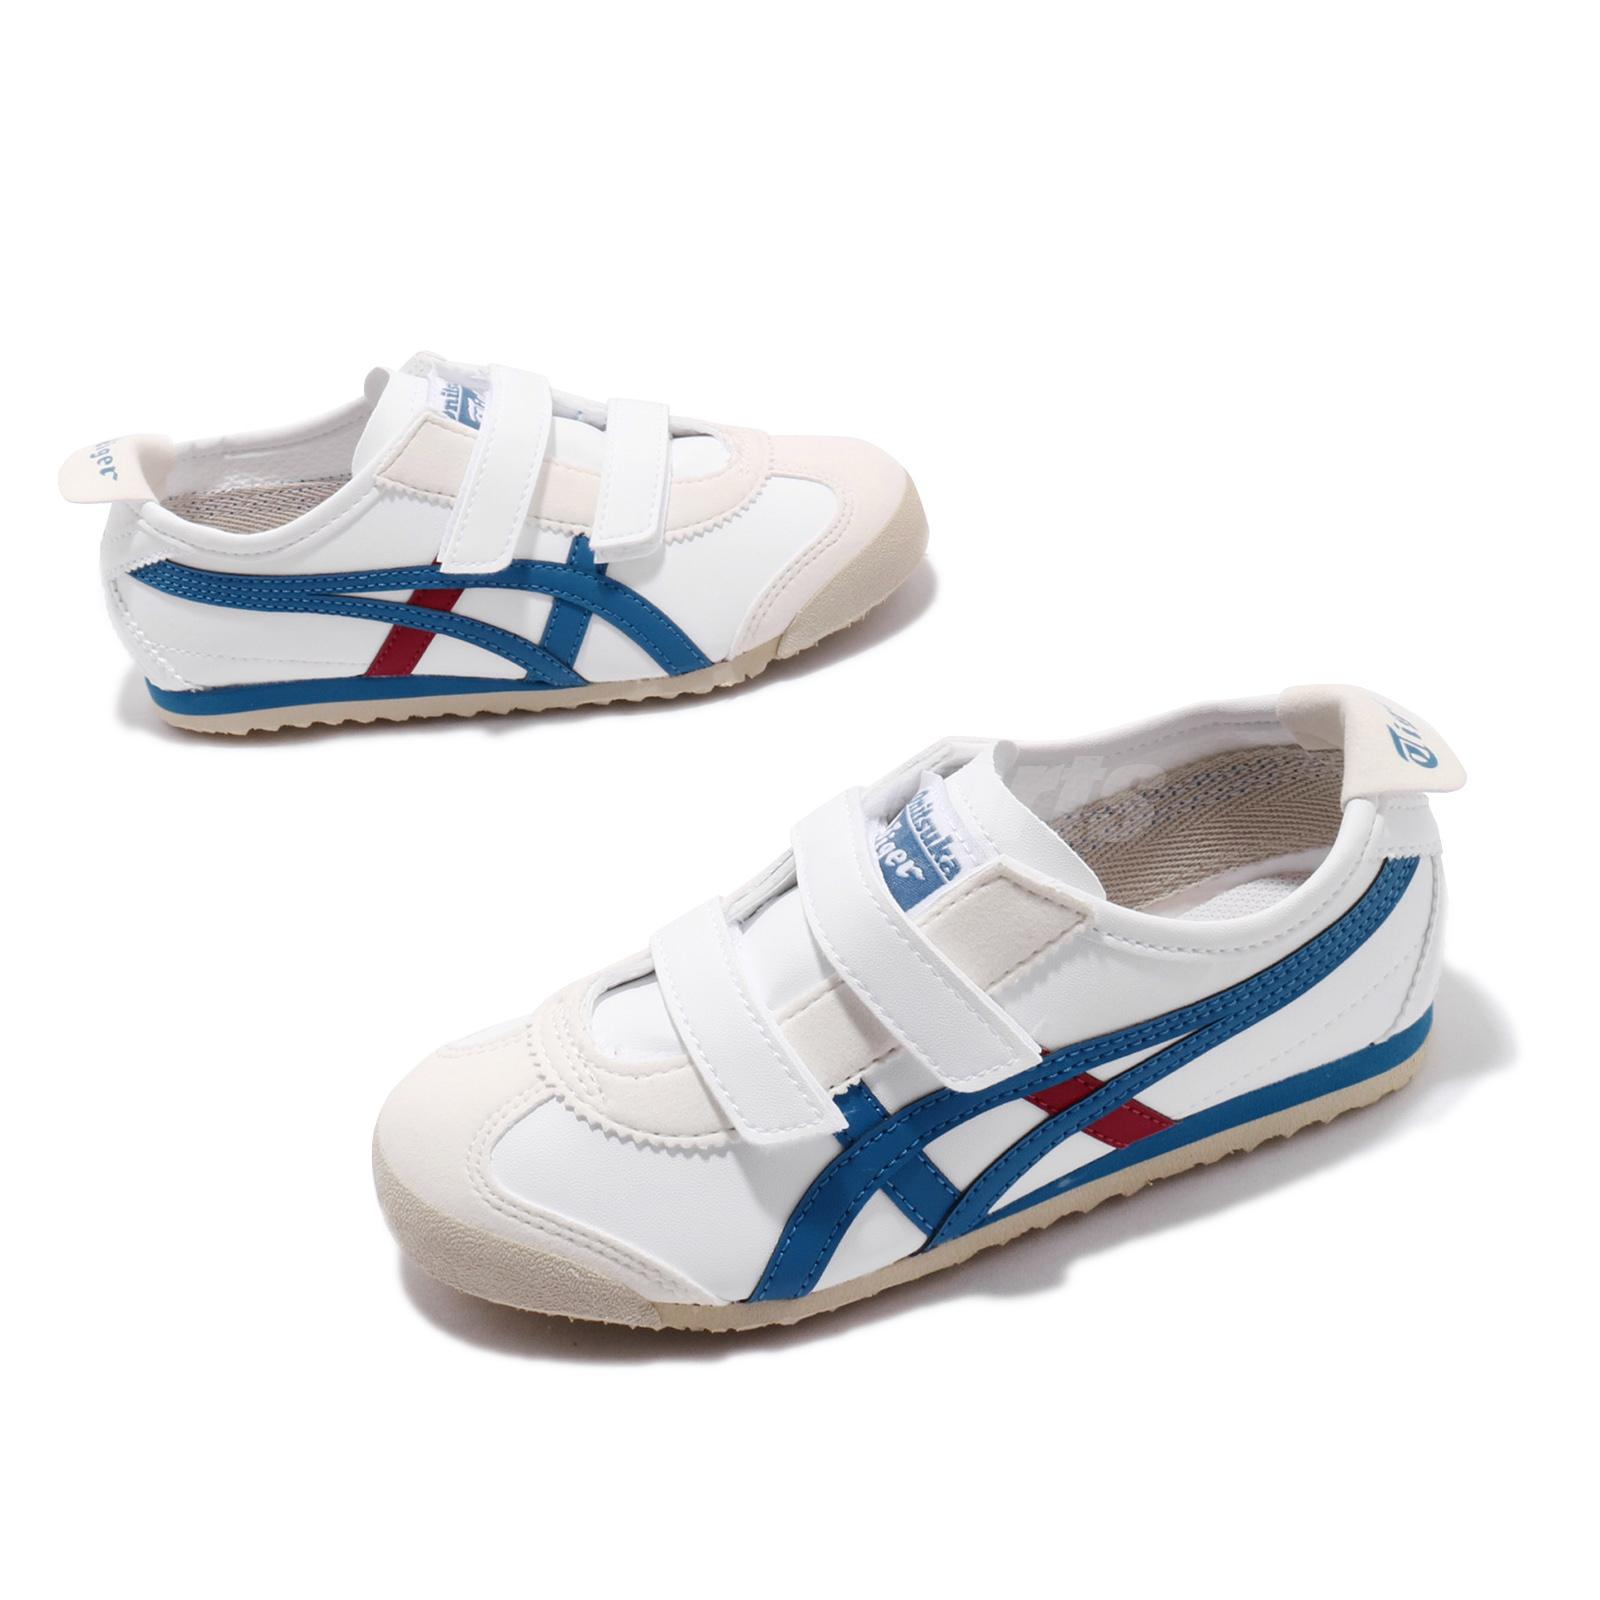 premium selection d815e 1a353 Details about Asics Onitsuka Tiger Mexico 66 Baja PS White Blue Red Kid  Preschool C4D5Y-0143